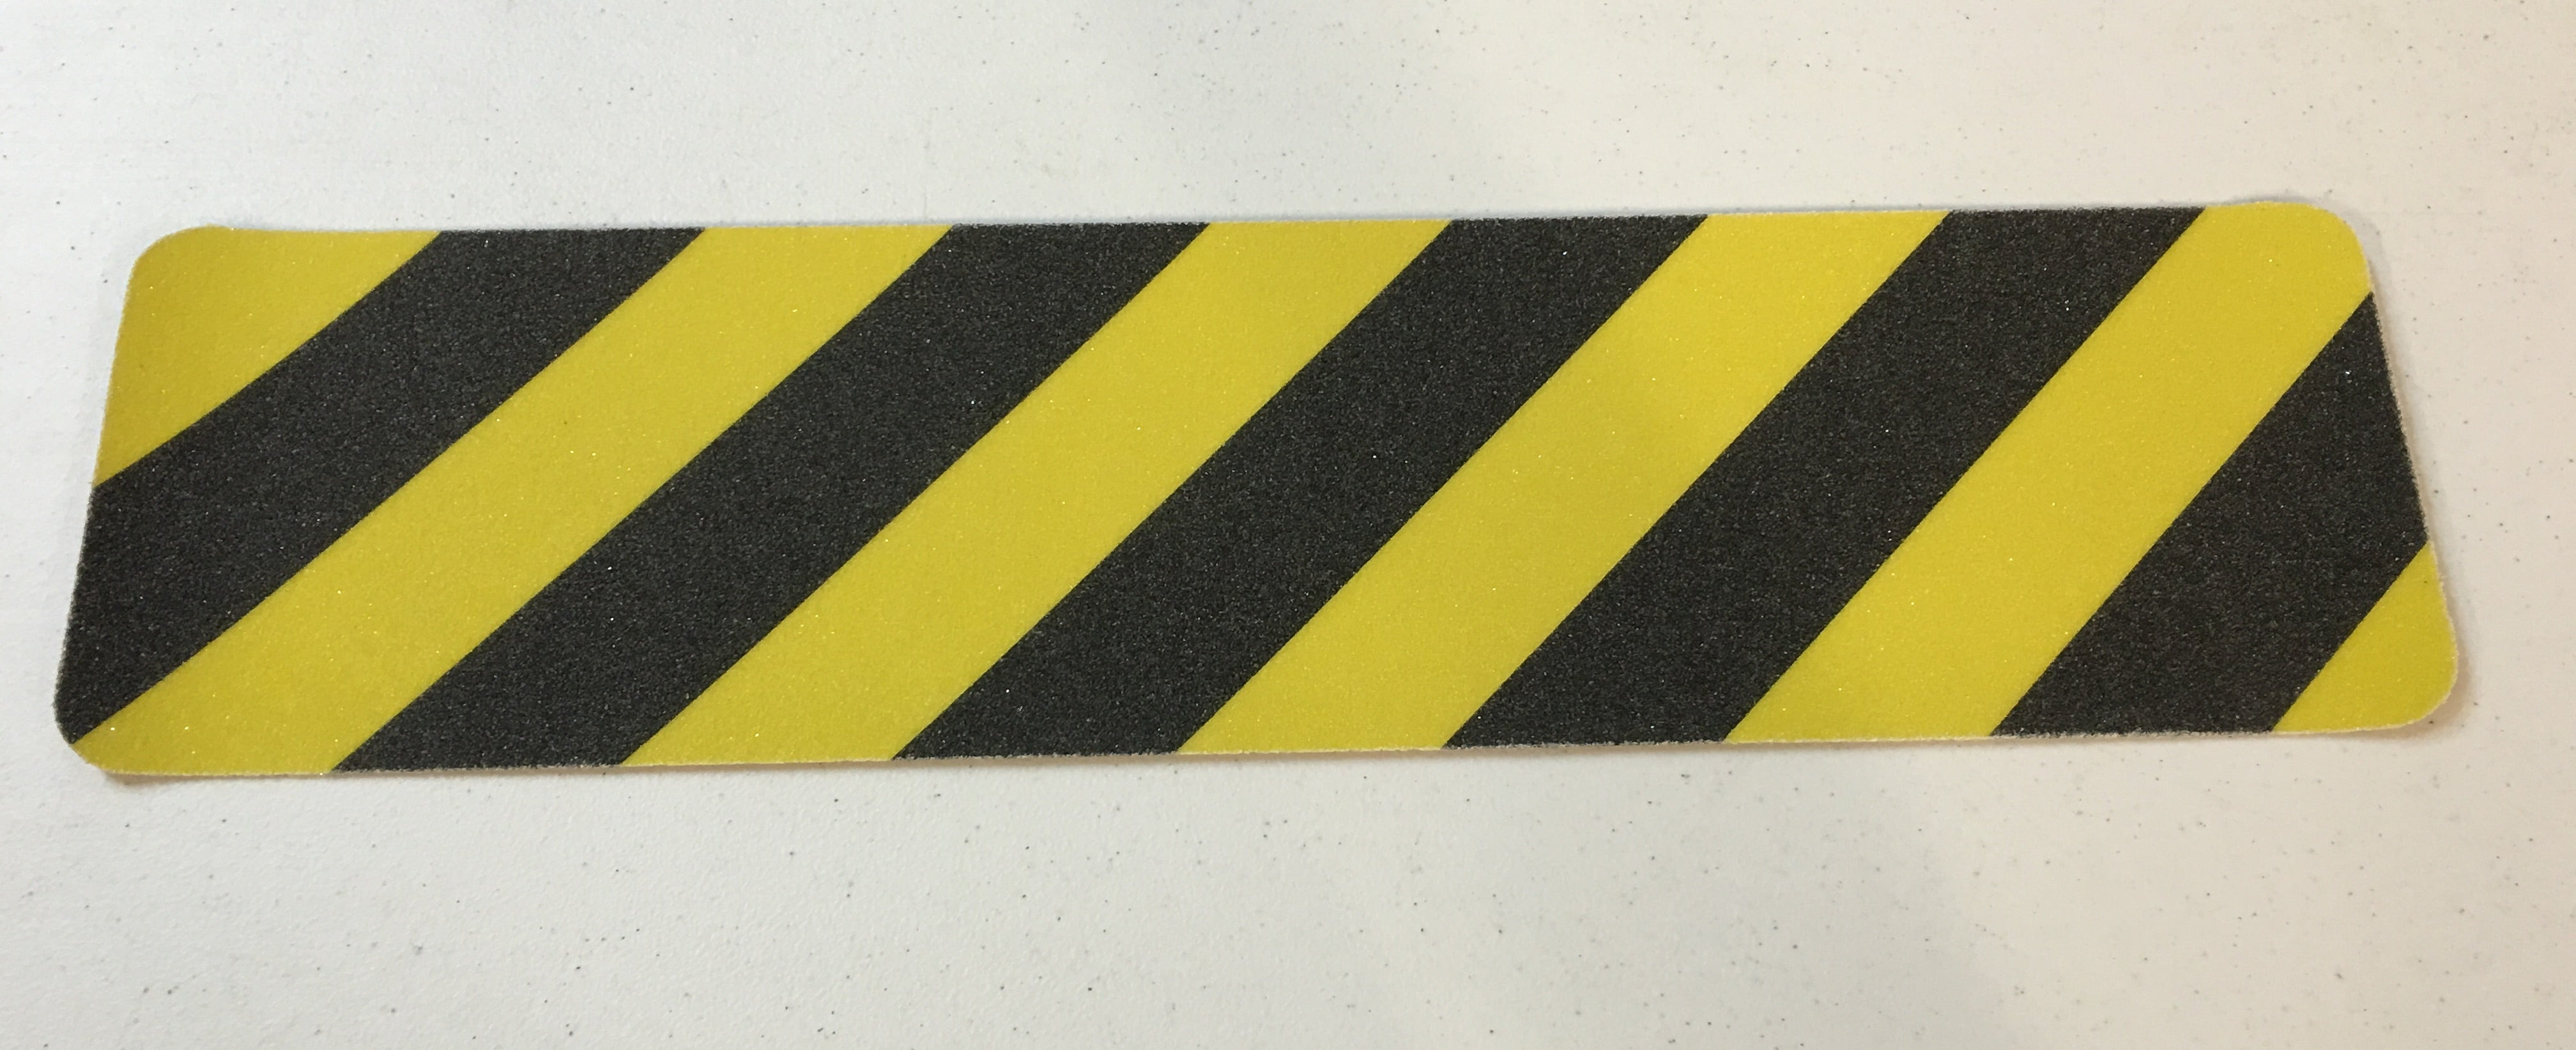 "3"" X 24"" Abrasive Black Yellow Striped Hazard Warning Anti Slip Treads Safety Tape 84317 Package of 100"